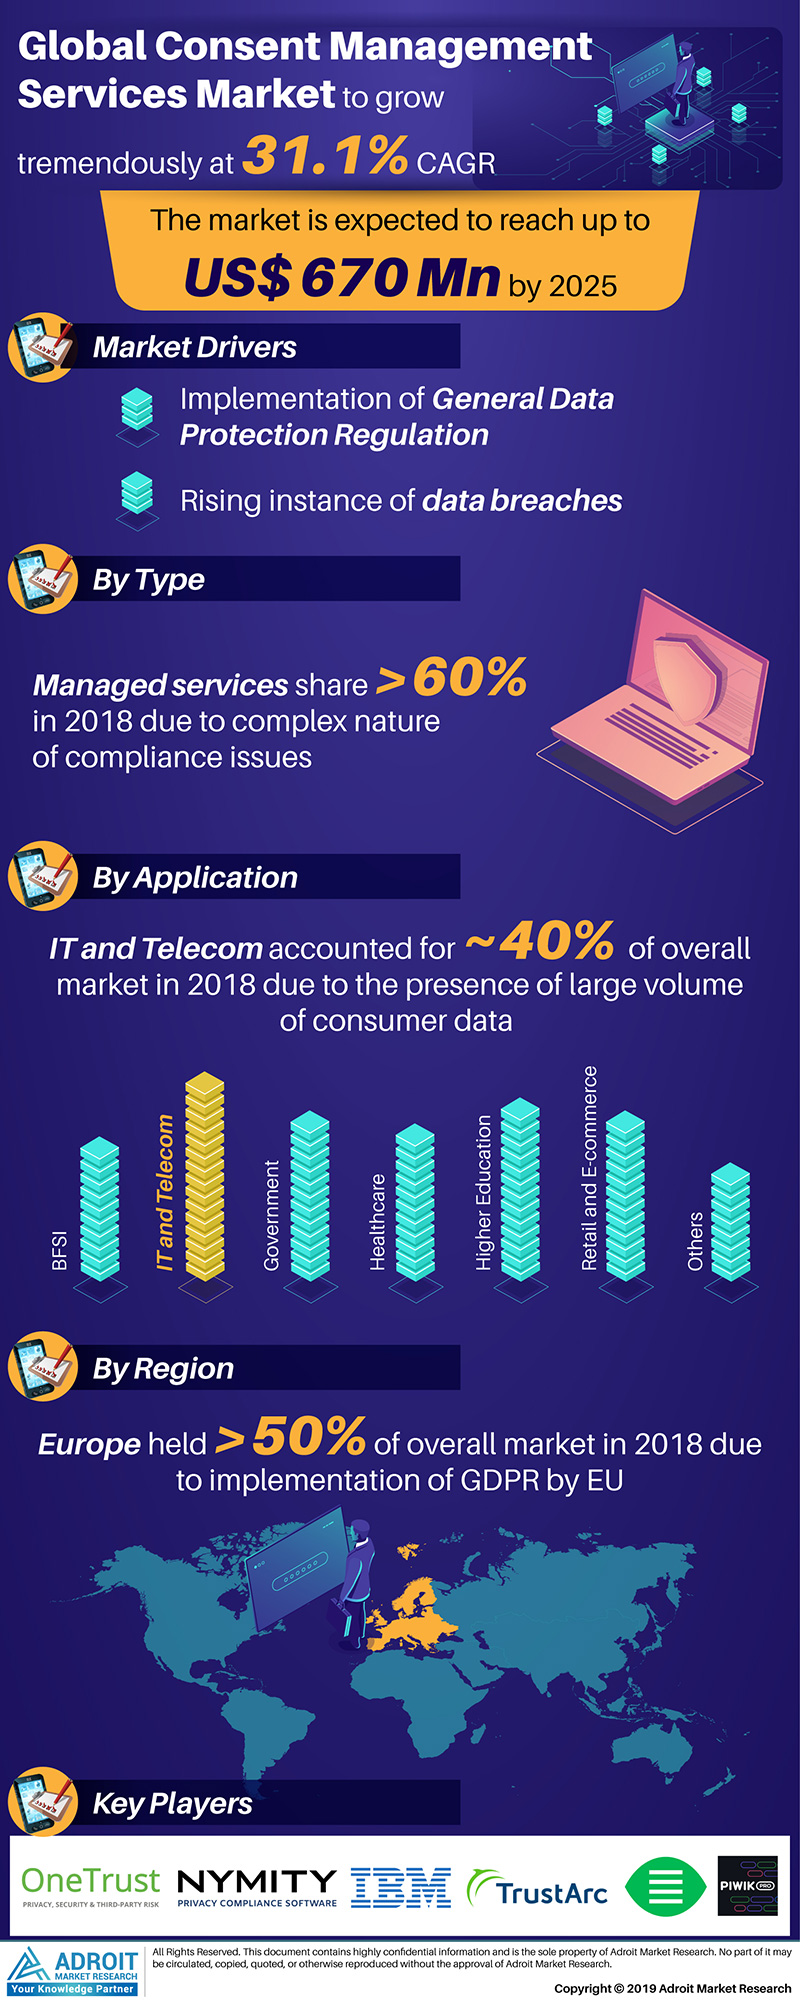 Global Consent Management Services Market Size 2017 By Applications, Region and Forecast 2019 to 2025